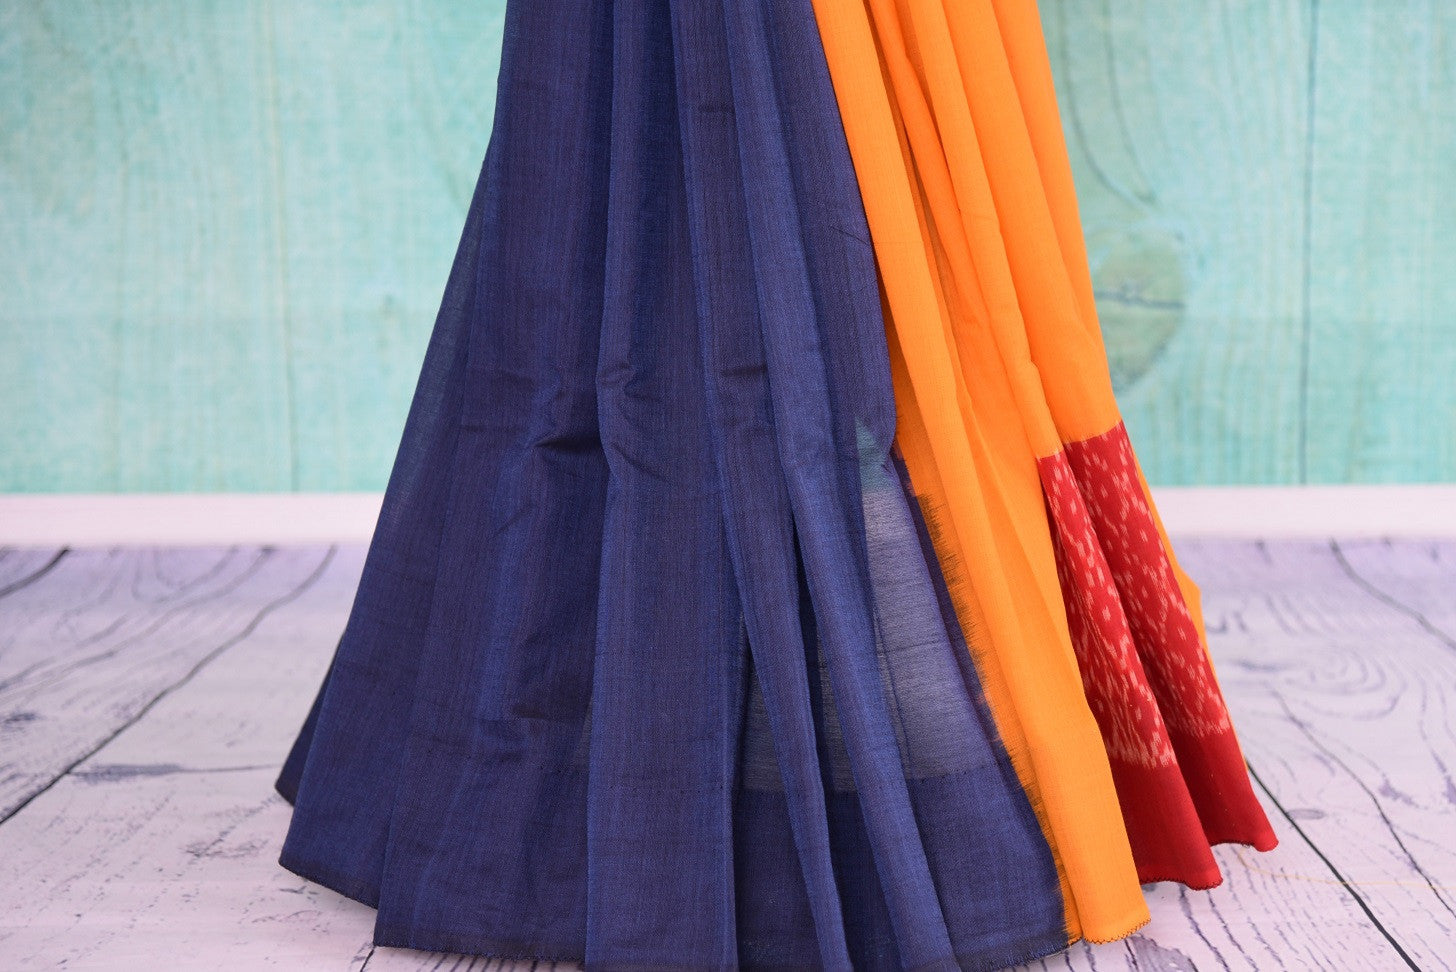 90D435 Bold blue, yellow & red, plain sari available at our online ethnic fashion store Pure Elegance in USA. The cotton ikkat saree makes for the ideal Indian party wear outfit.